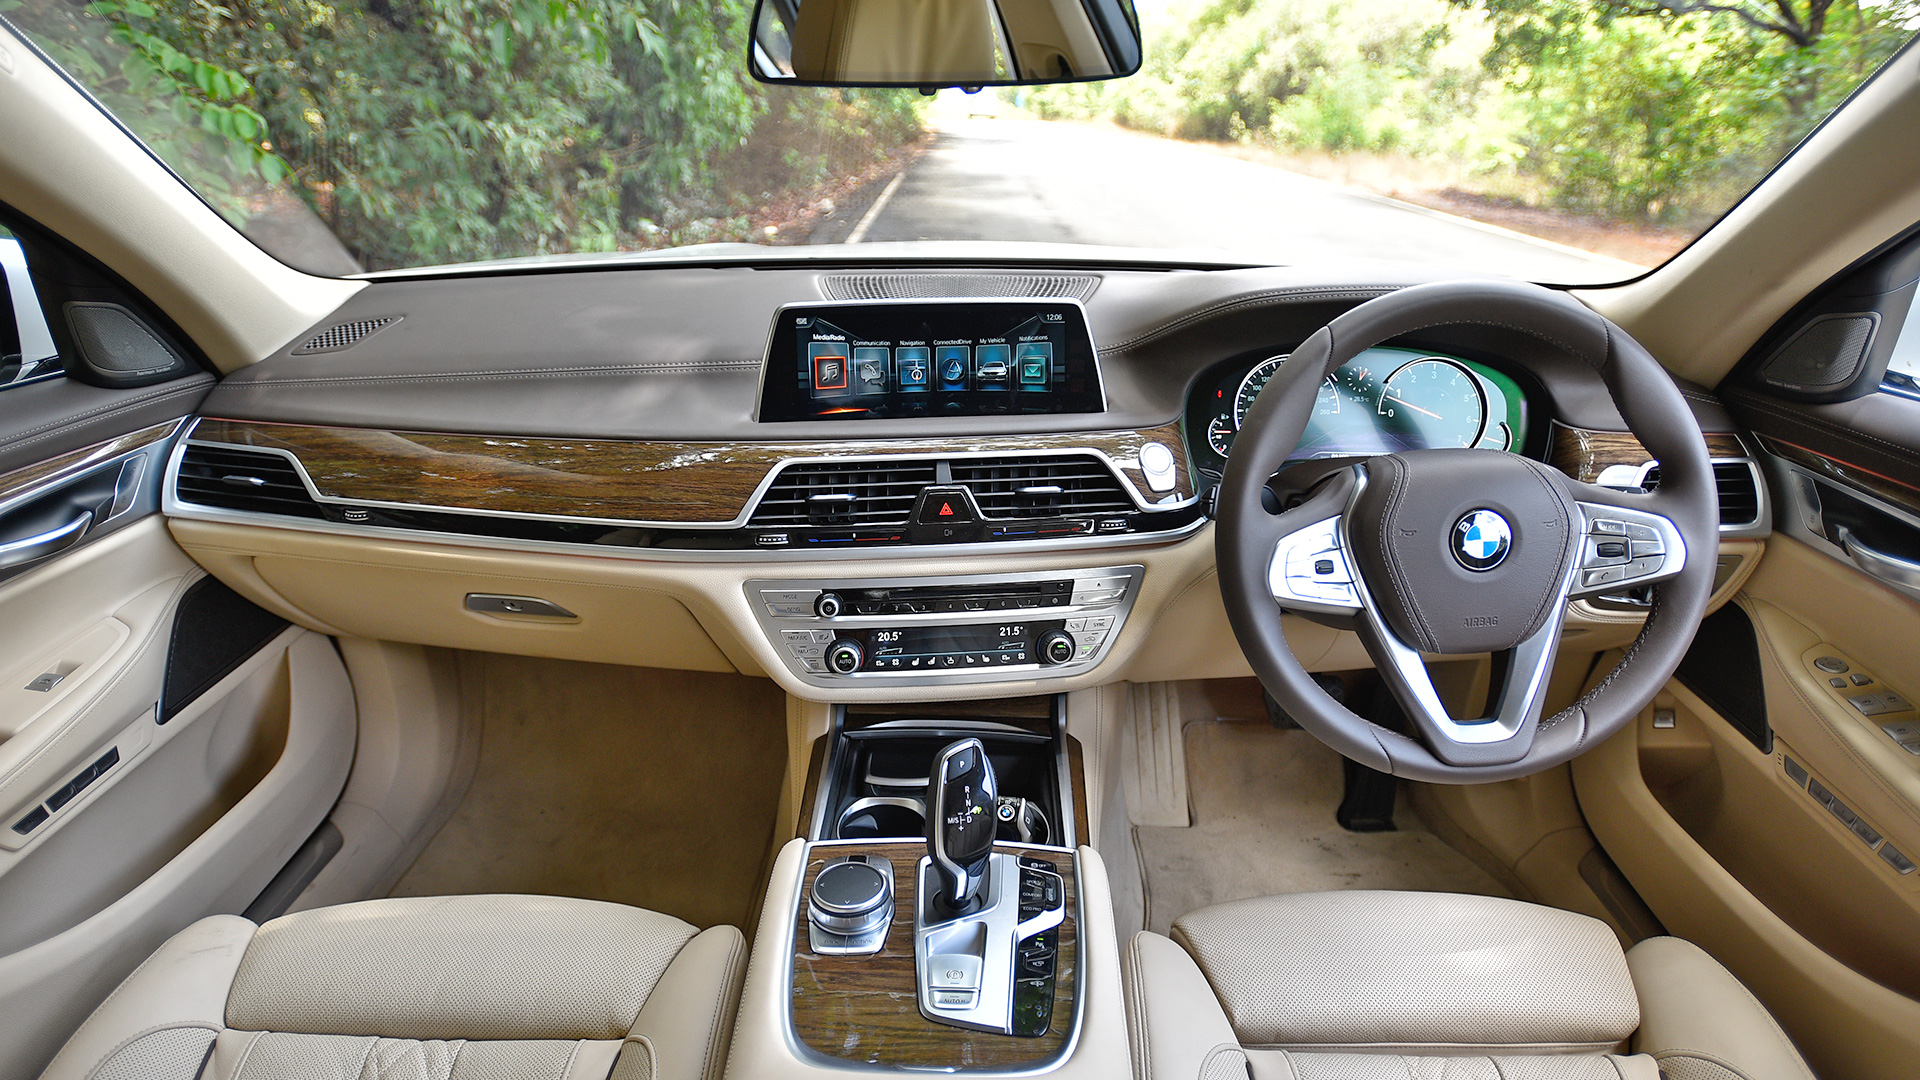 BMW 7 Series 2017  Price Mileage Reviews Specification Gallery  Overdrive